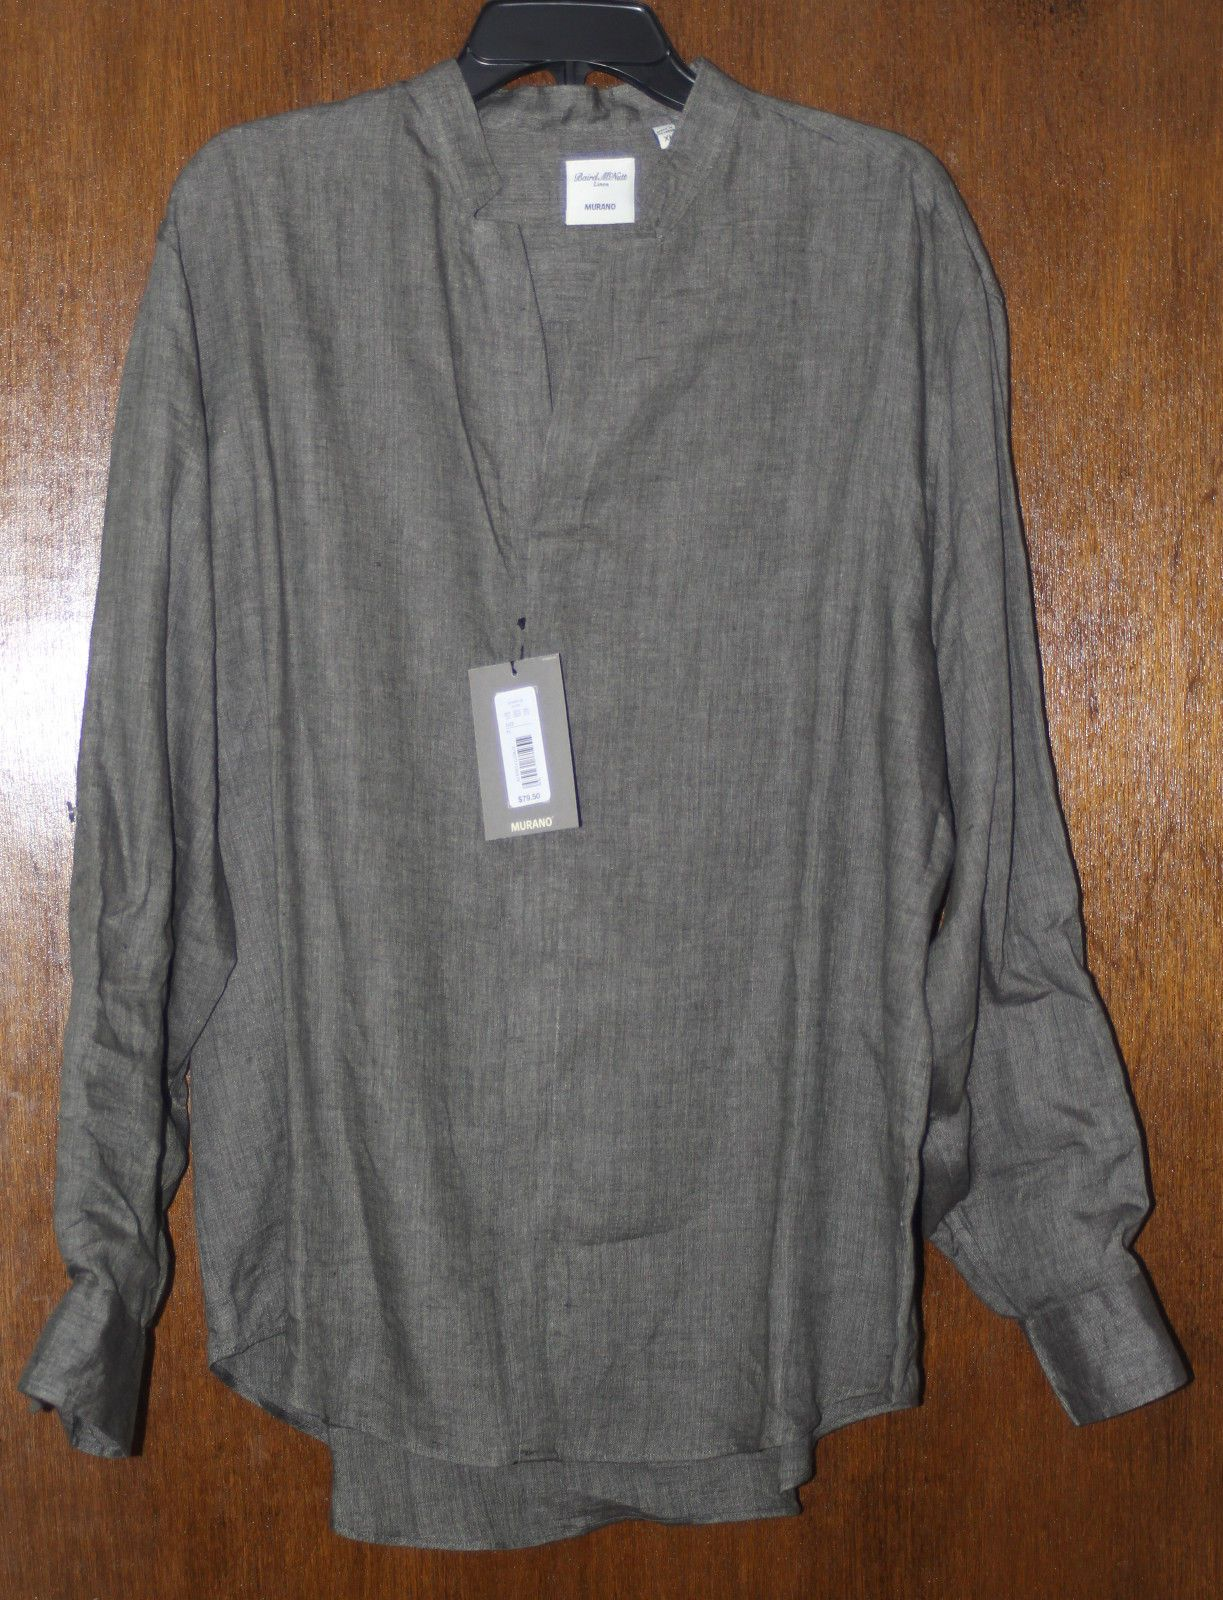 M XL Murano Mens New $80 100/% Linen Banded Western Collar Button Shirt L NWT